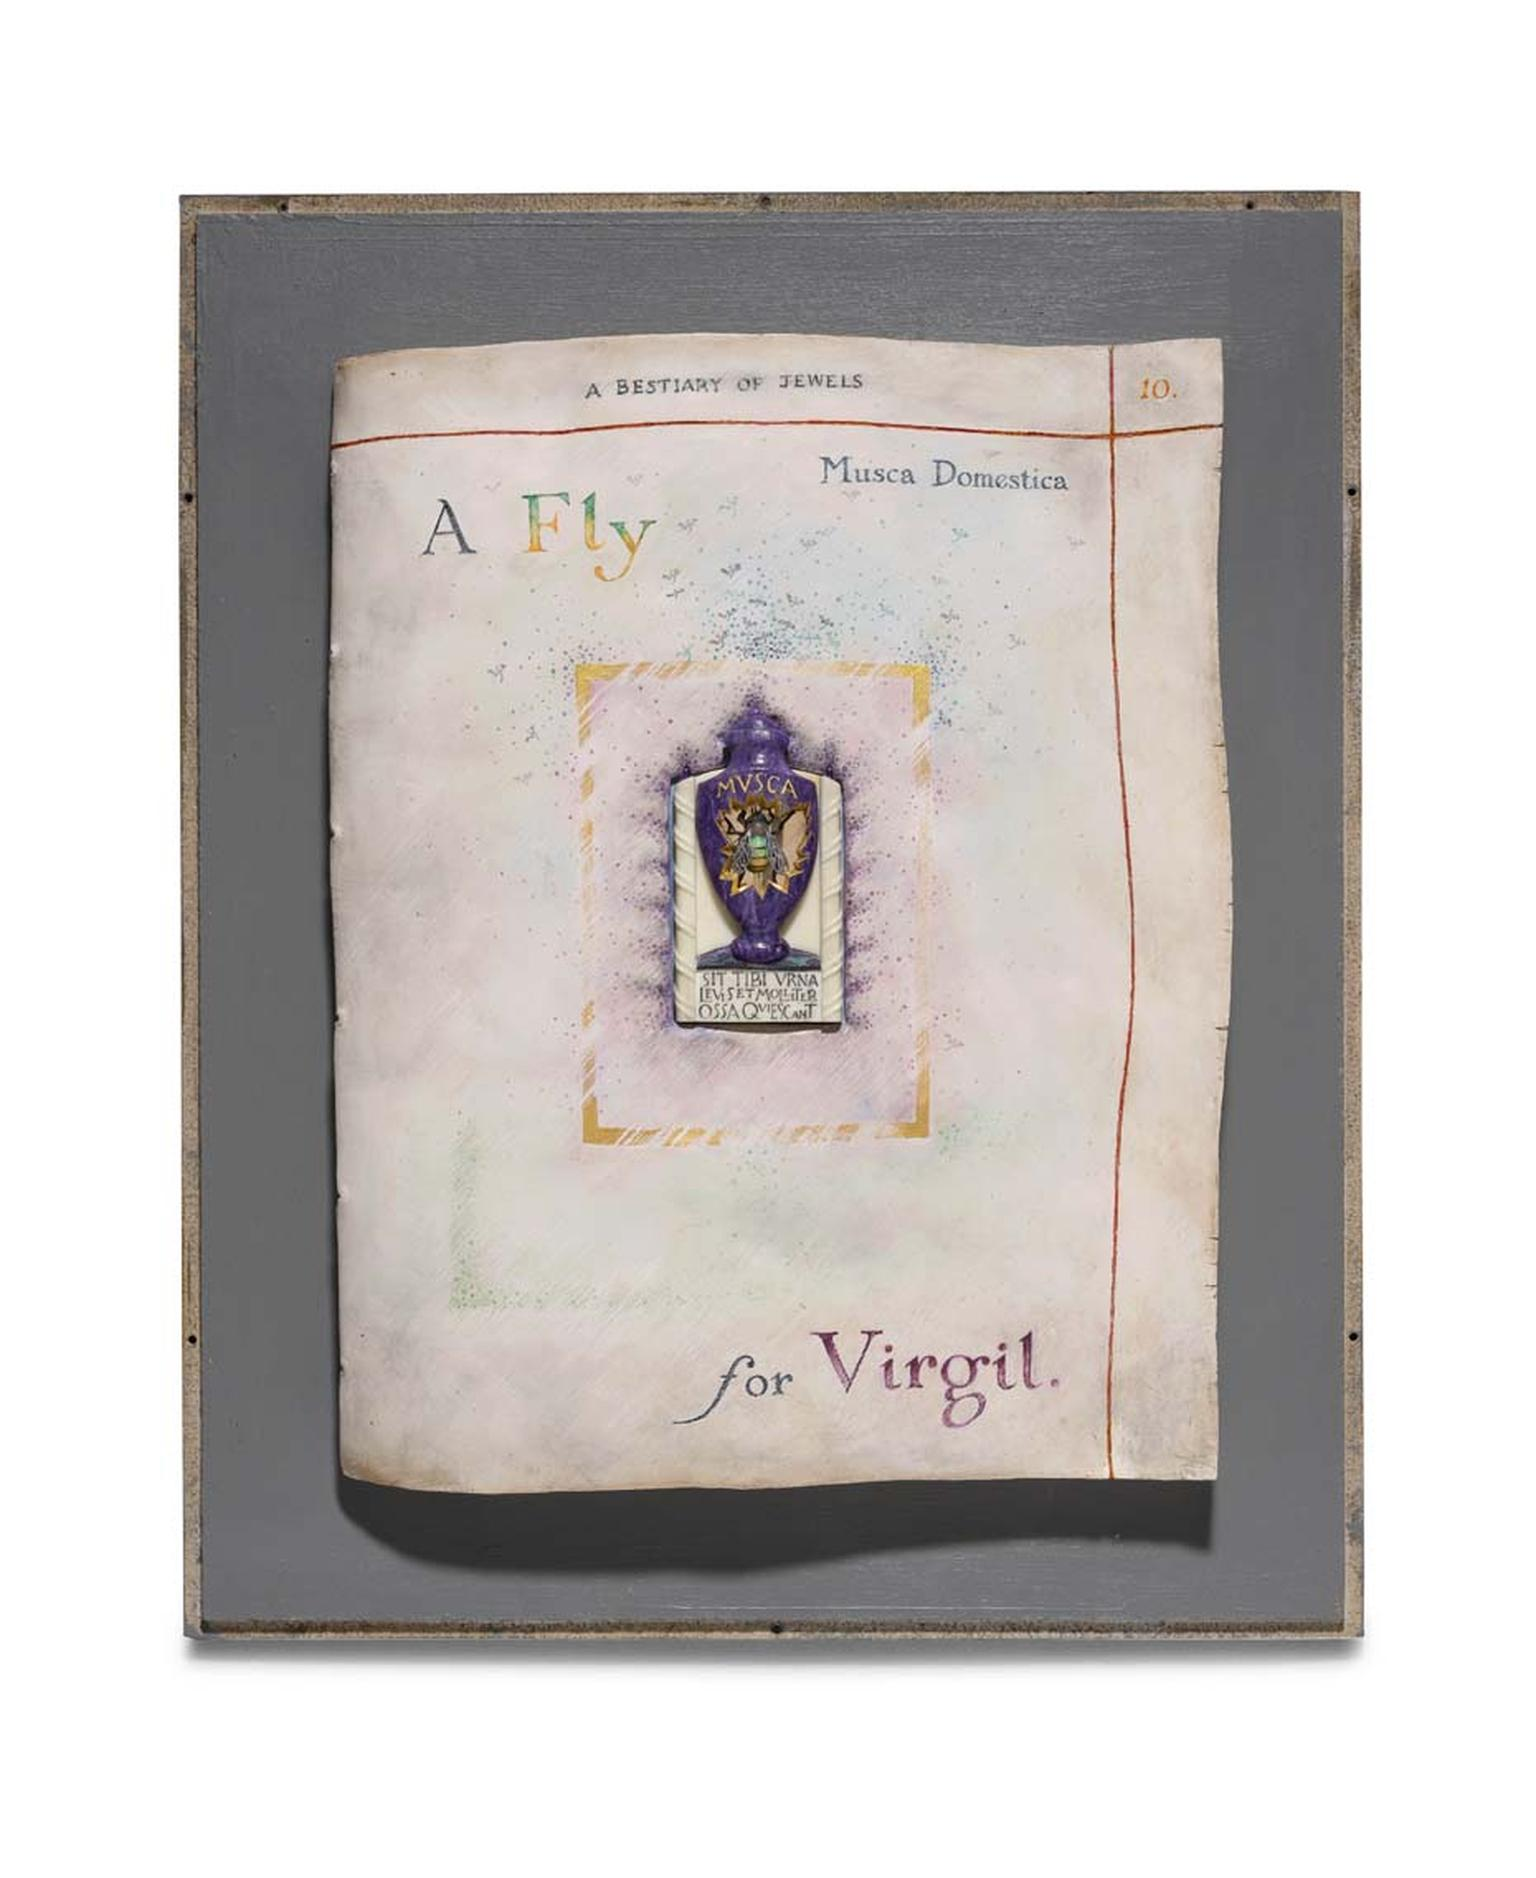 Kevin Coates 'A Fly for Virgil' 2012 brooch